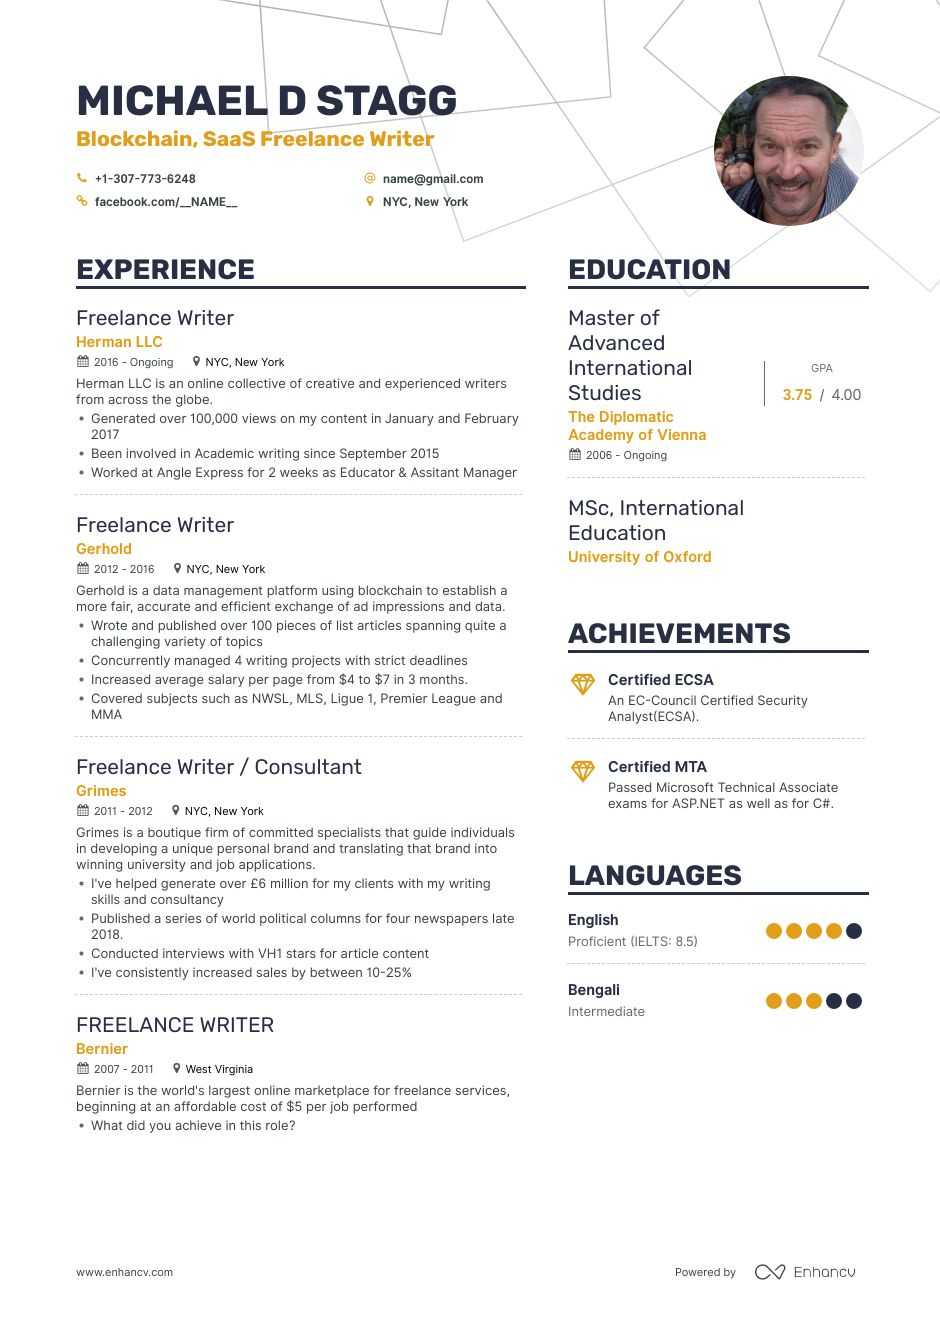 freelance writer resume examples and skills you need to get hired marketing content Resume Marketing Content Writer Resume